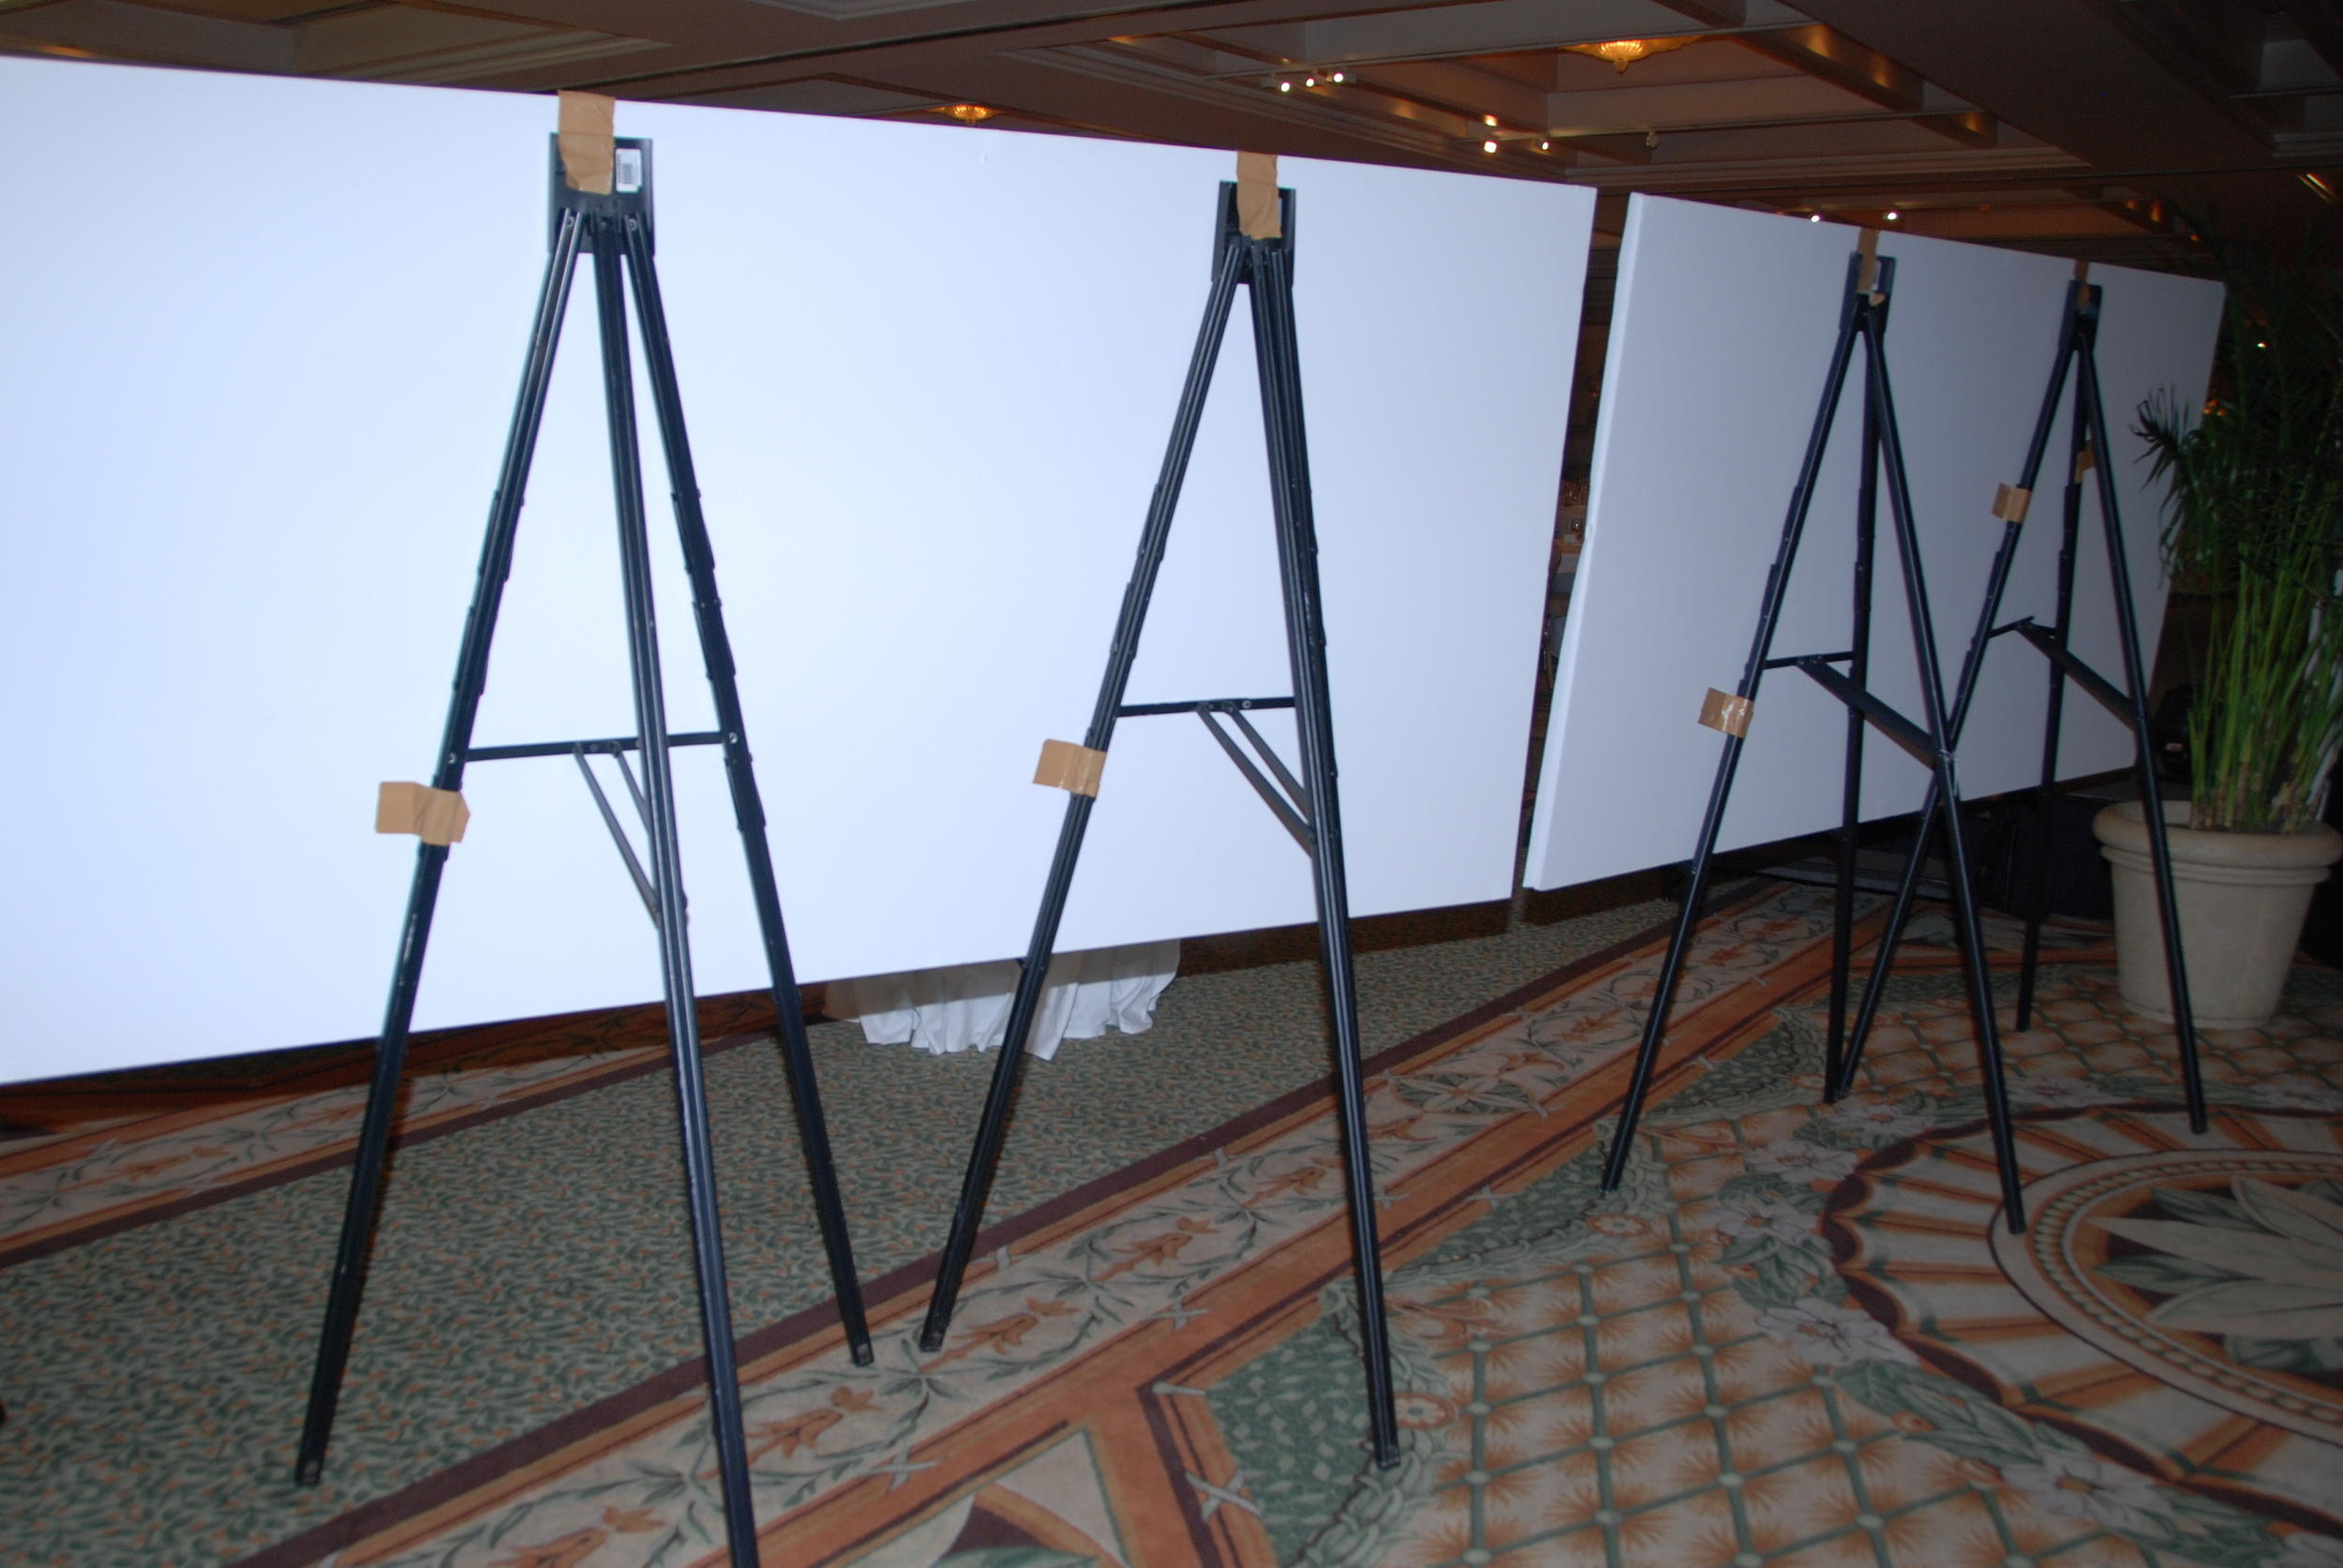 Easels support foamcore boarding so graphic recording can happen in rooms where the fixed walls are not an option.